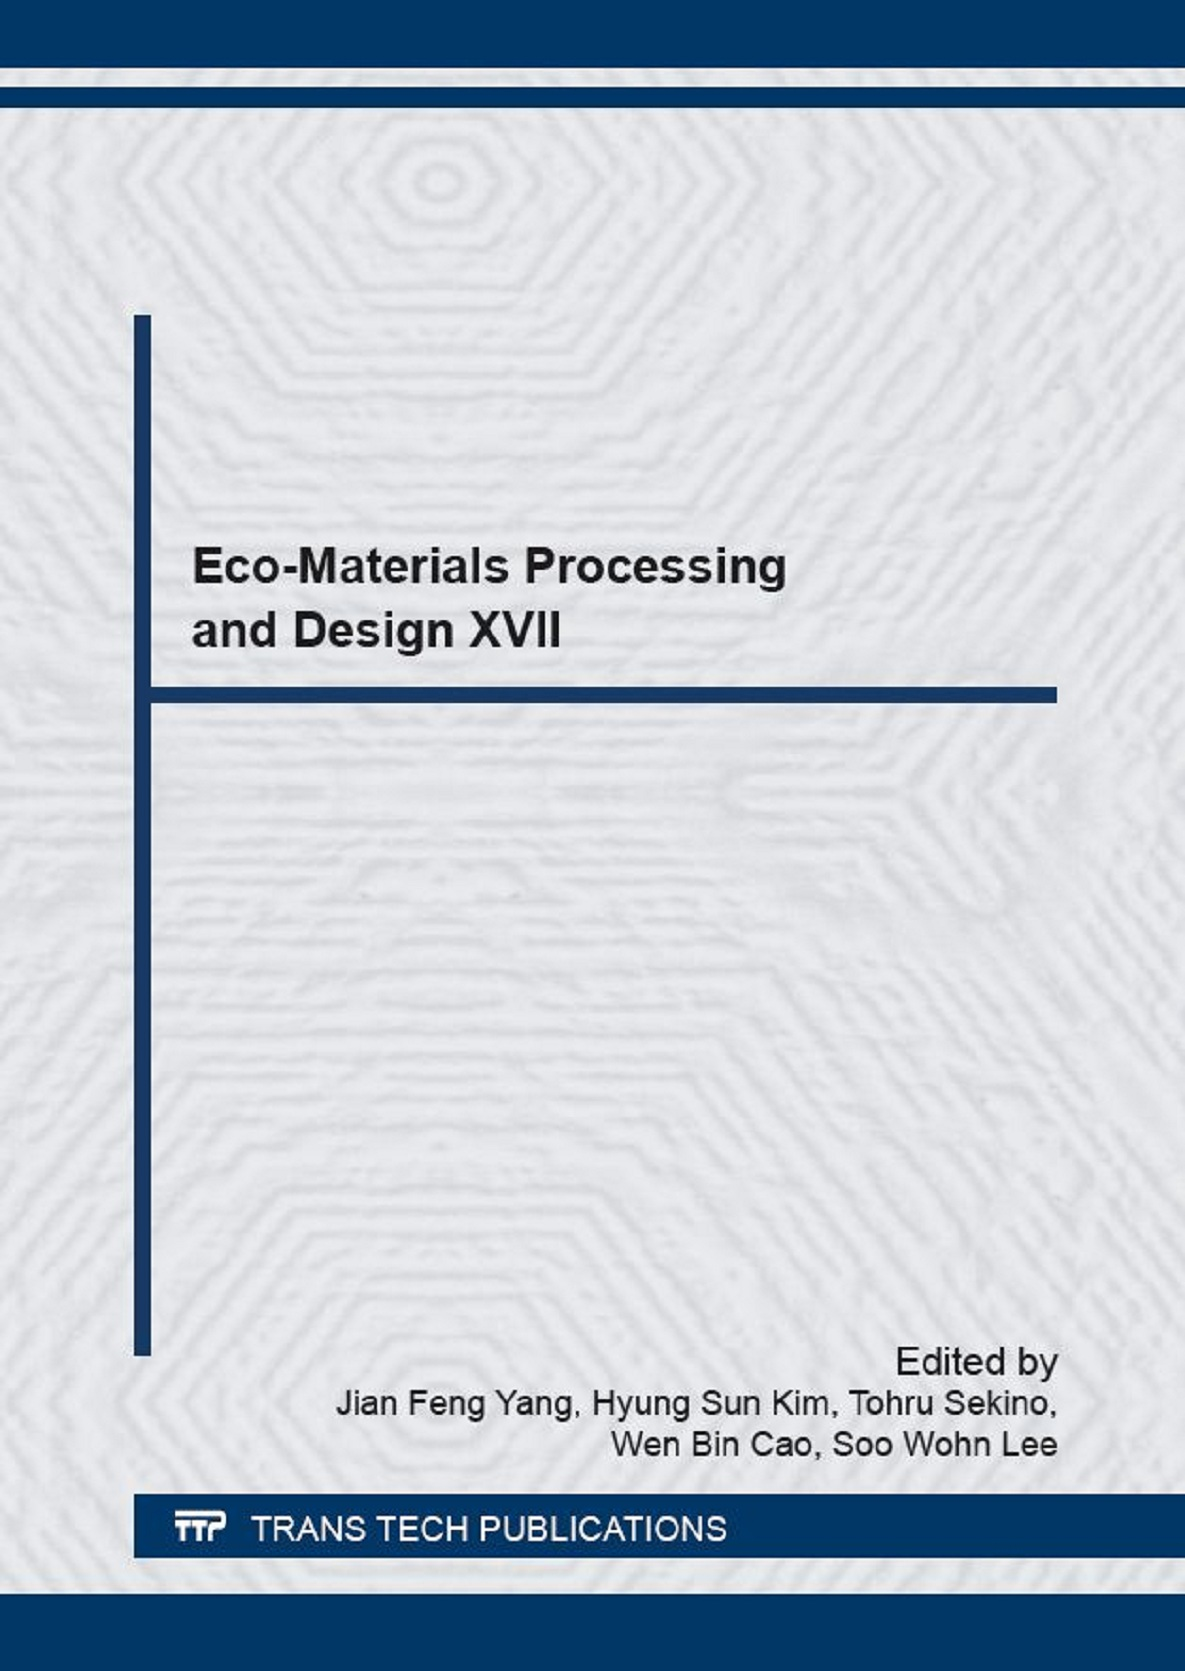 Eco-Materials Processing and Design XVII